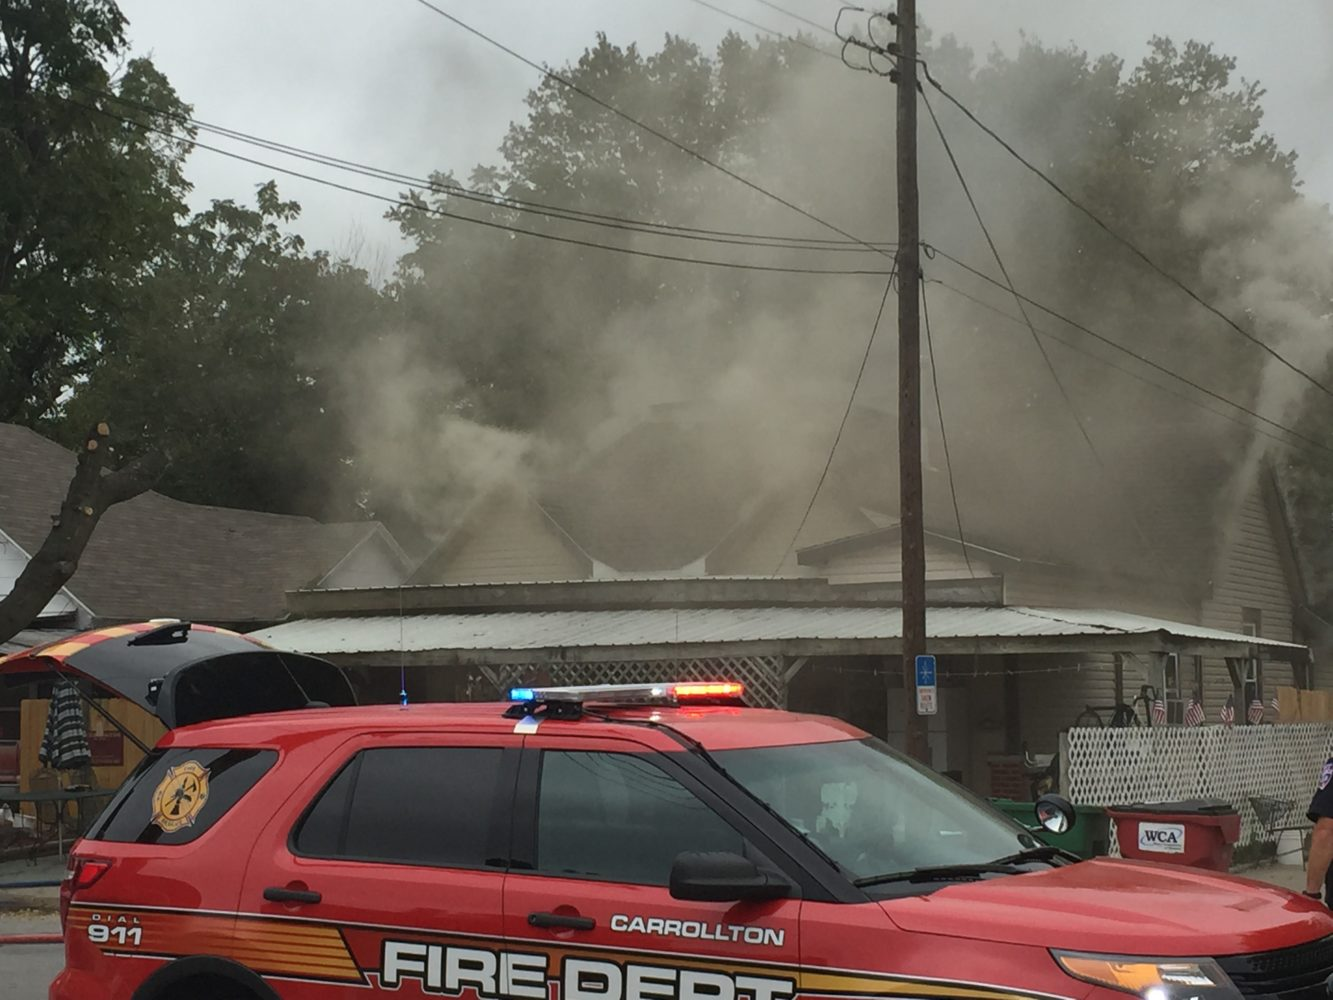 Officials fight flames in Carrollton home